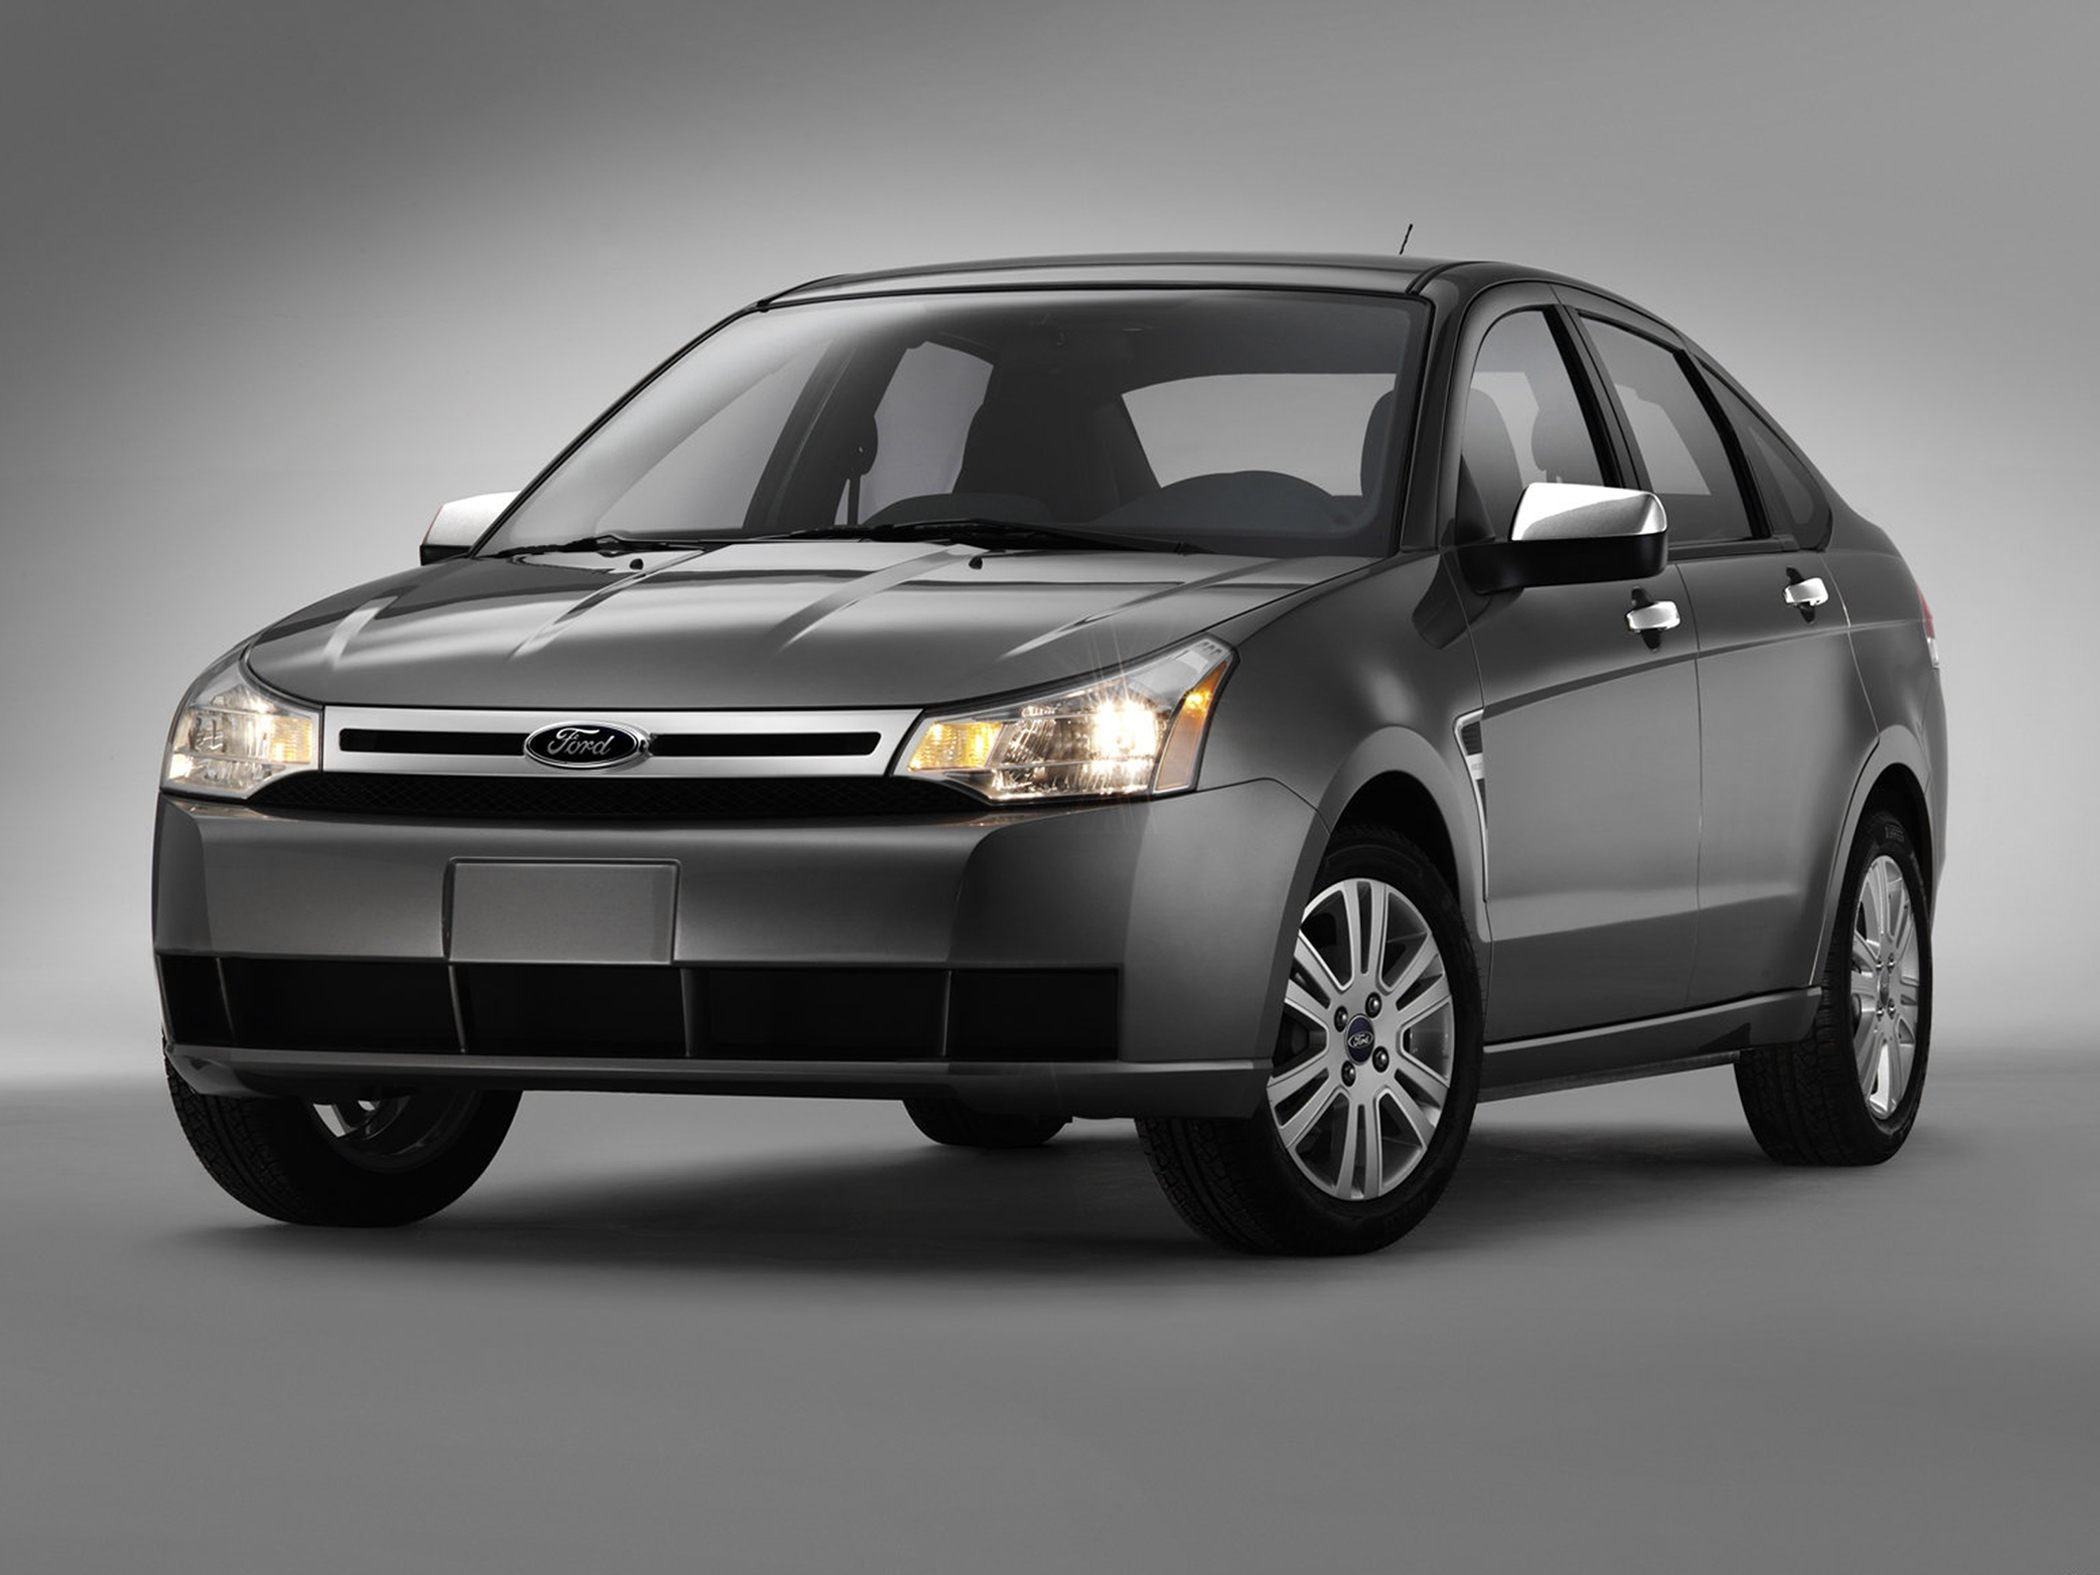 Latest 2010 Ford Focus Price Photos Reviews Features Free Download Original 1024 x 768